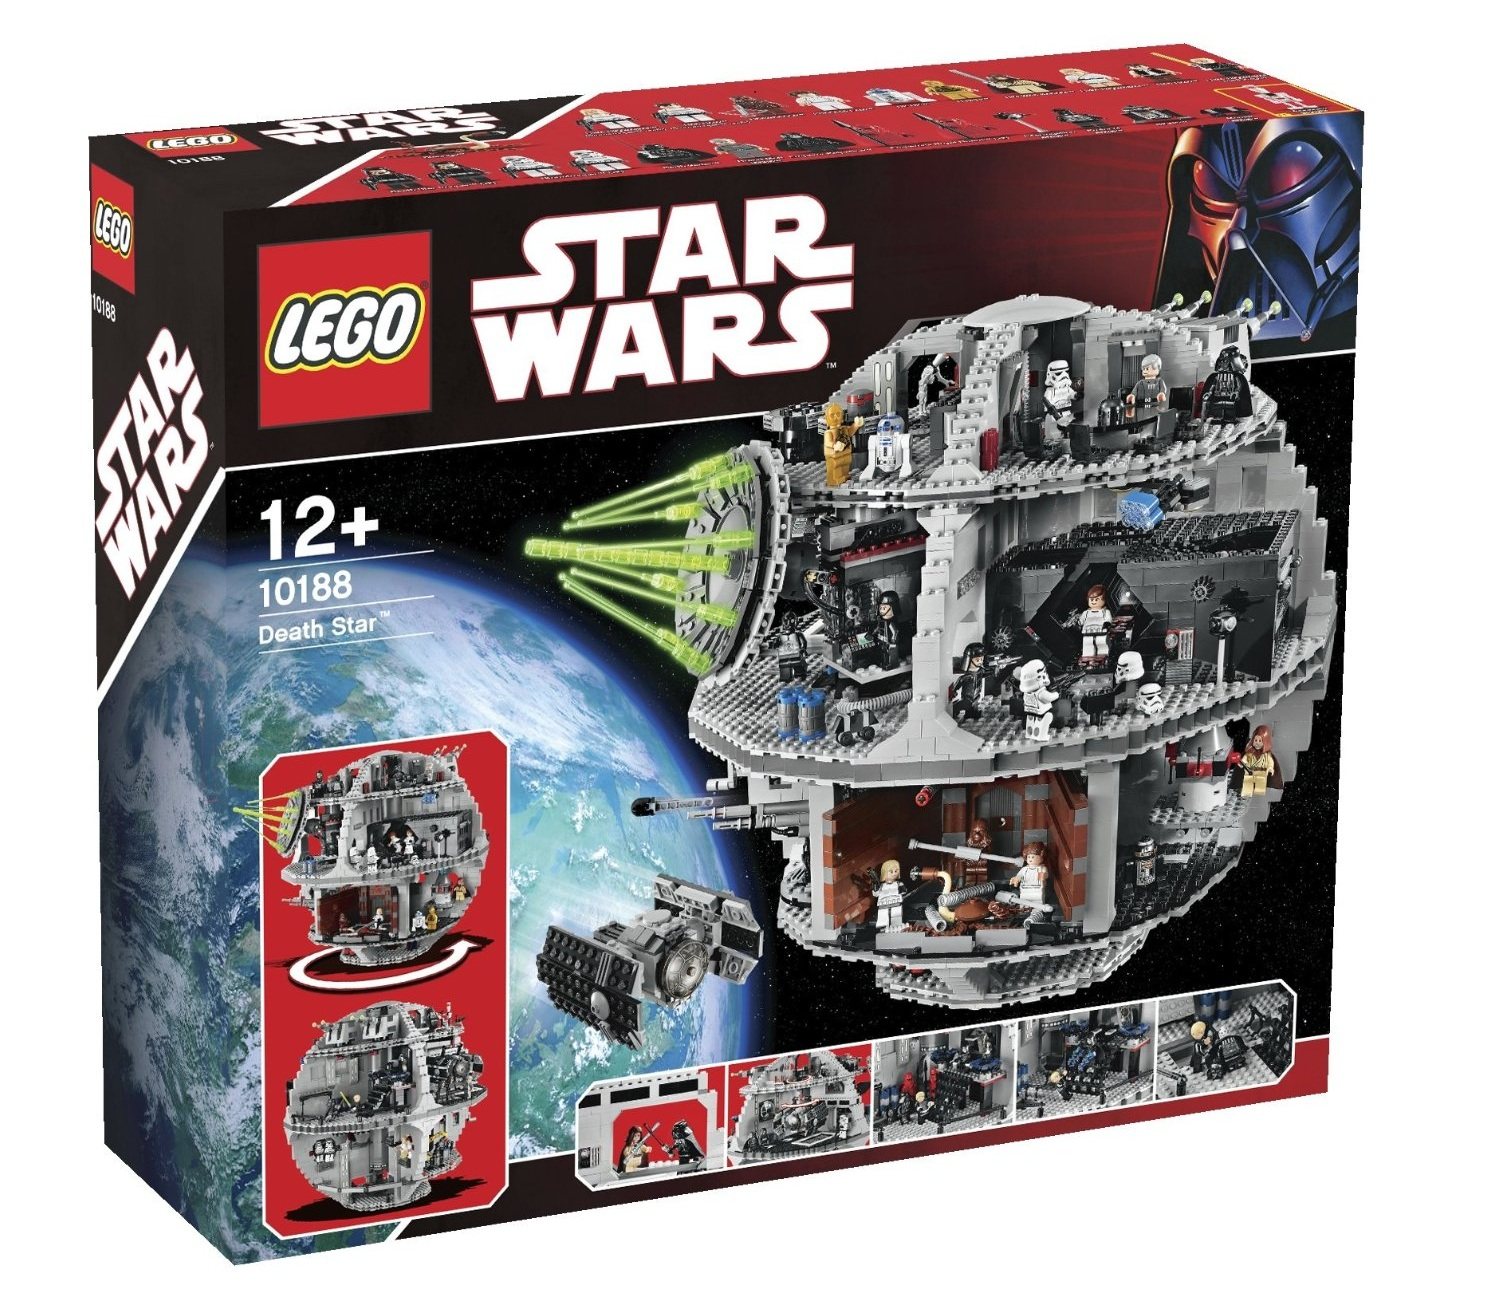 death star lego box - photo #3